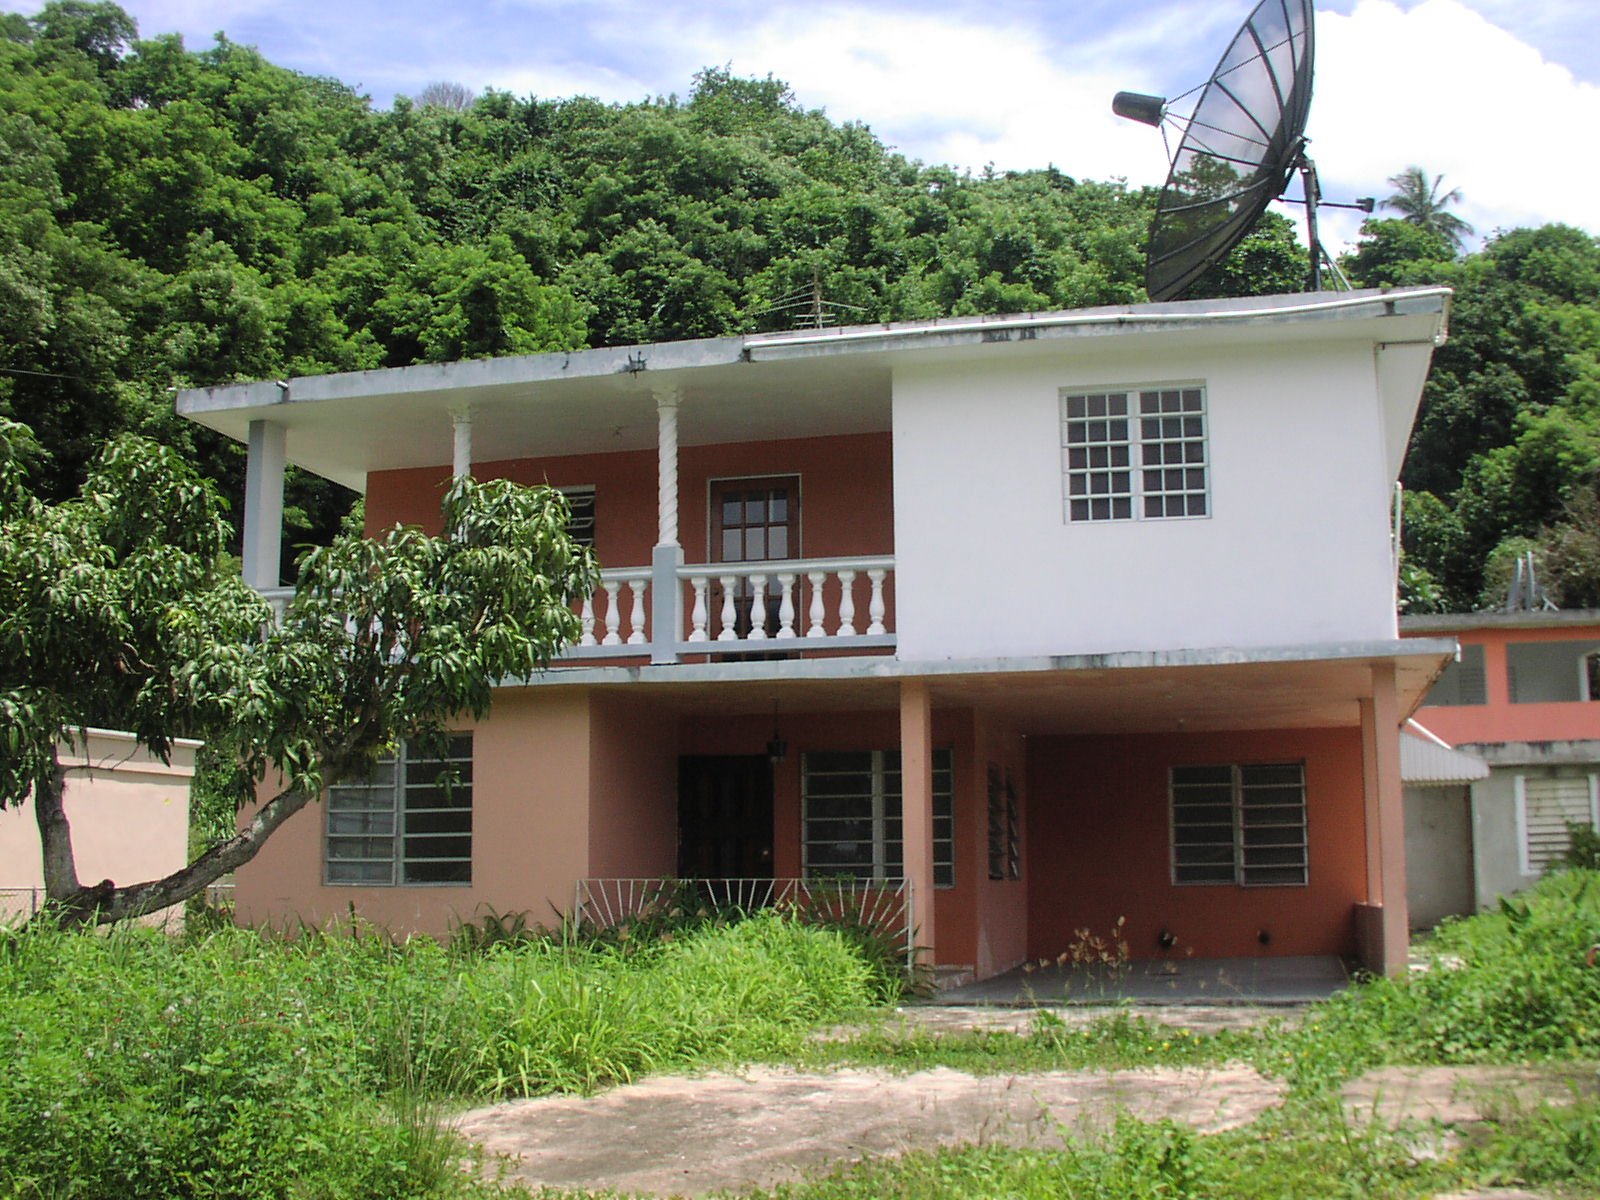 Arroyo puerto rico cheap houses for sale arroyo arroyo for Cheap new home builders